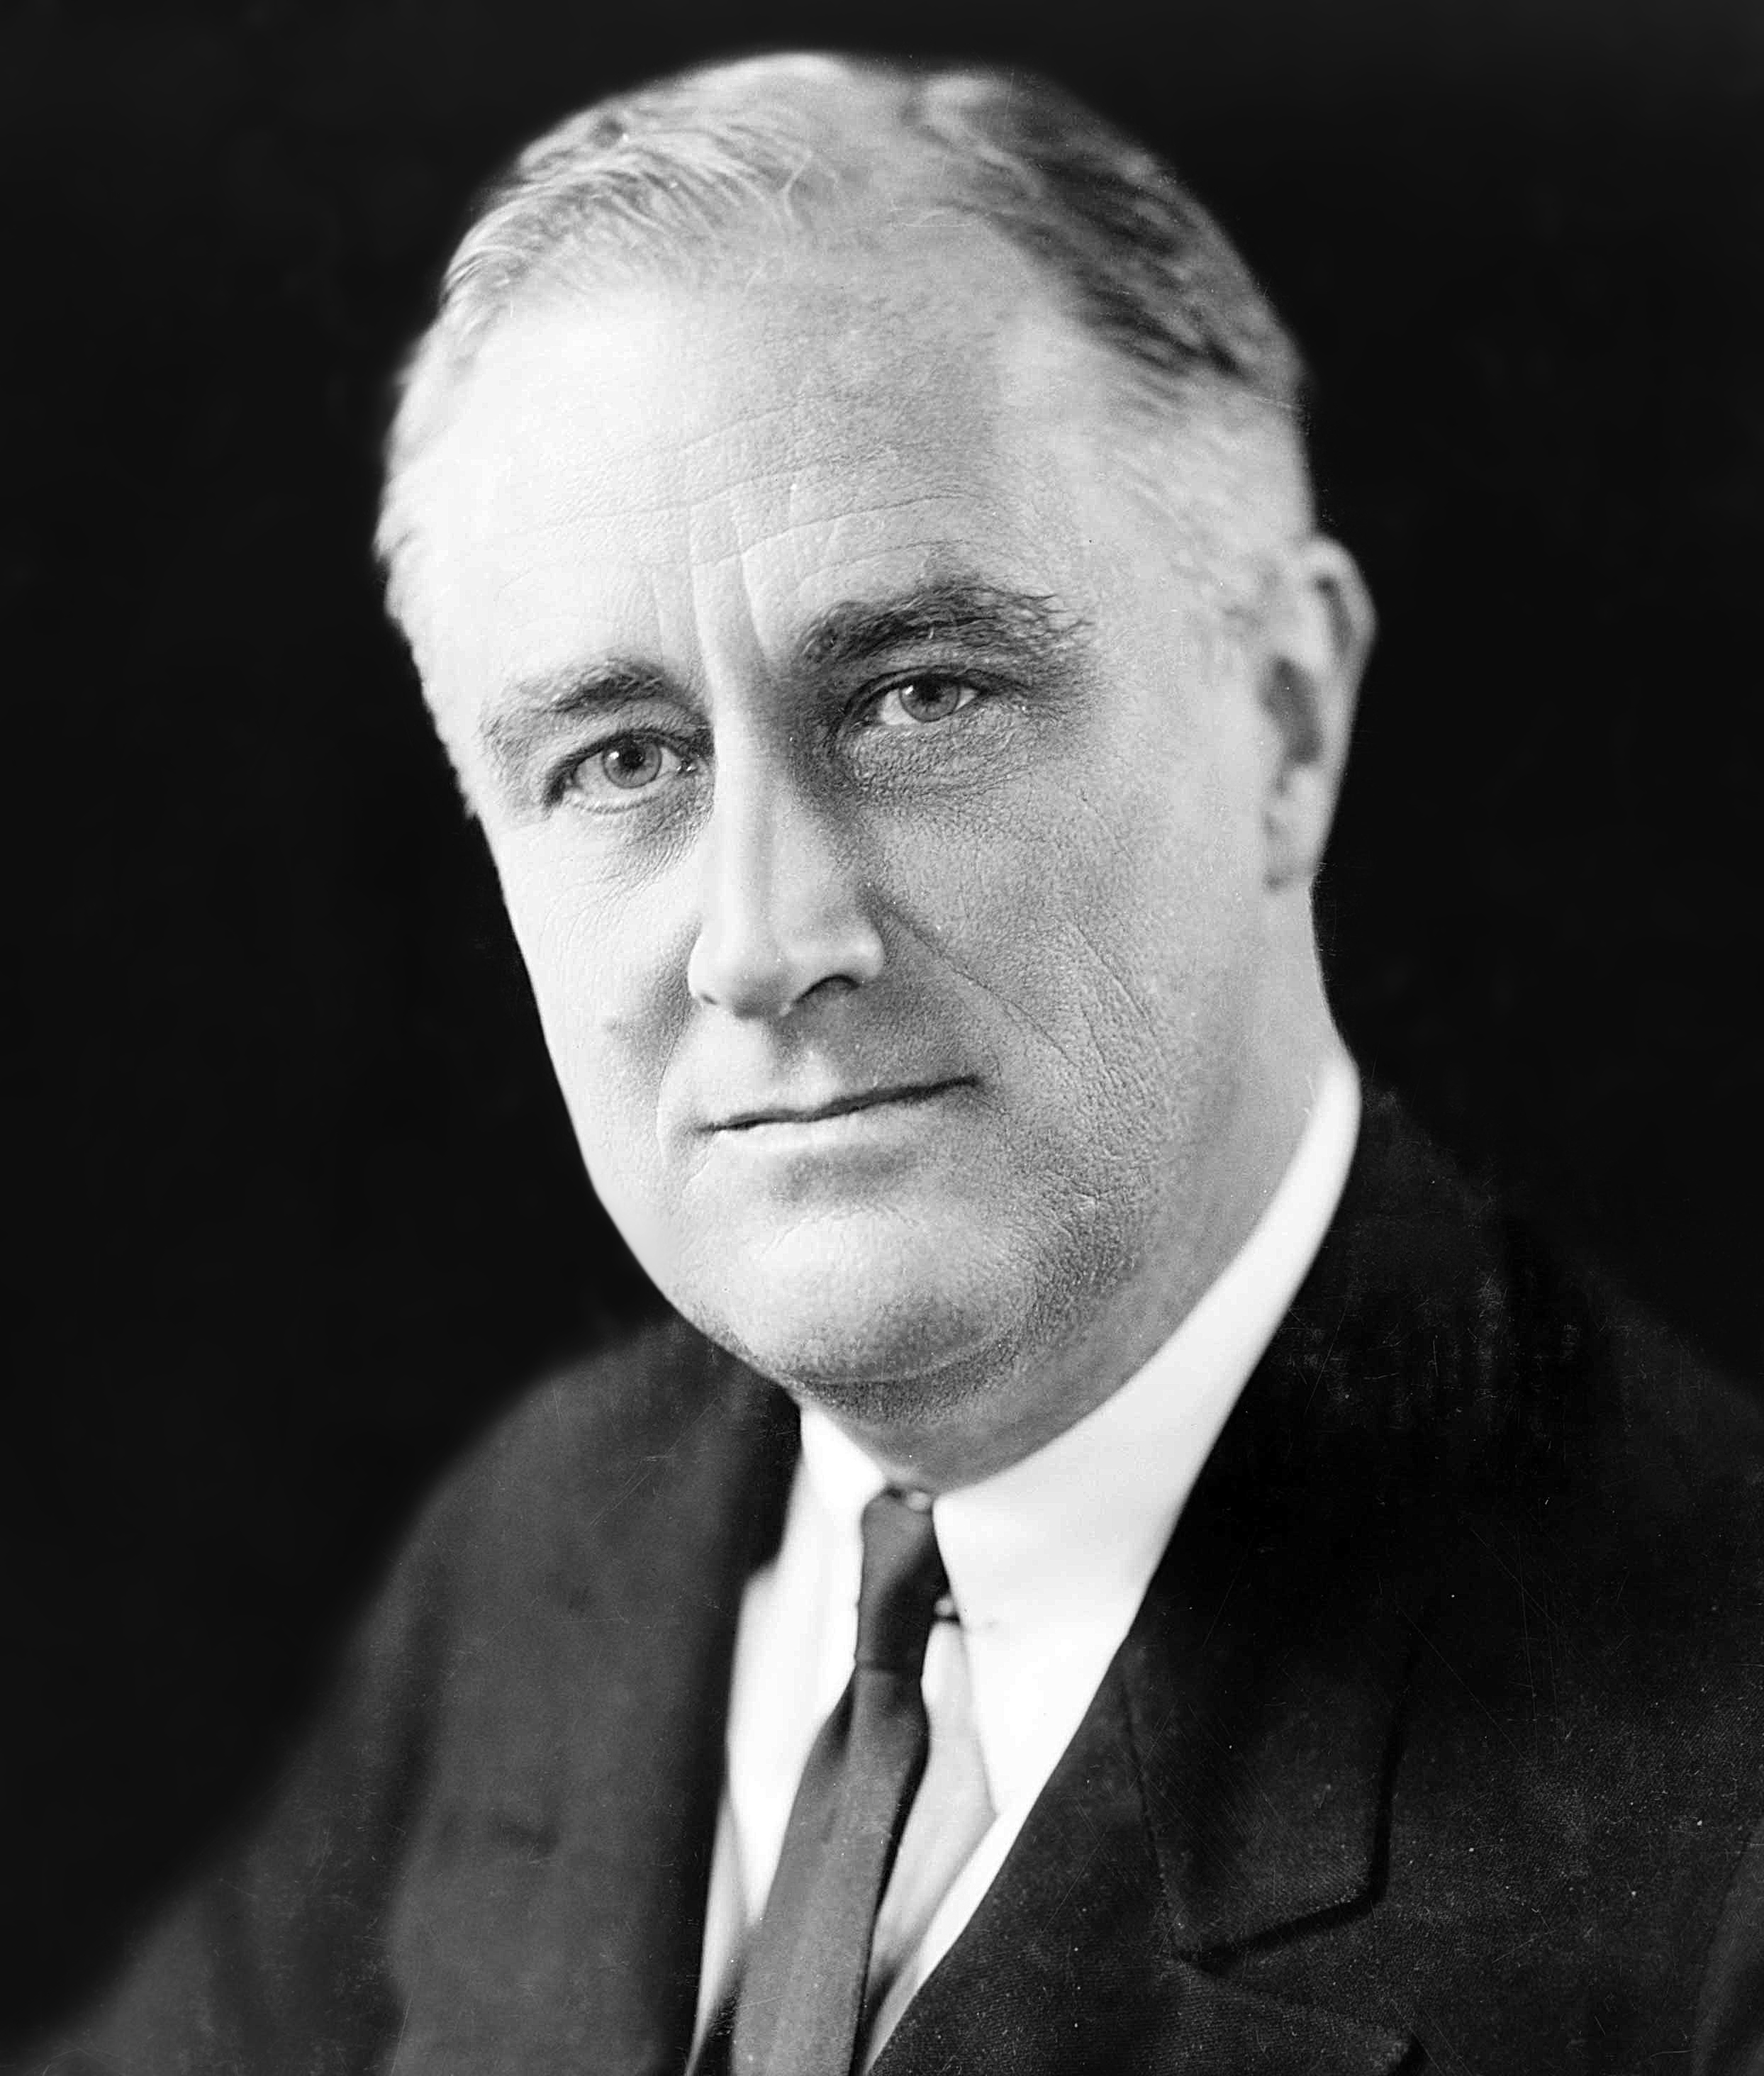 http://commons.wikipedia.org/wiki/File:FDR_in_1933.jpg